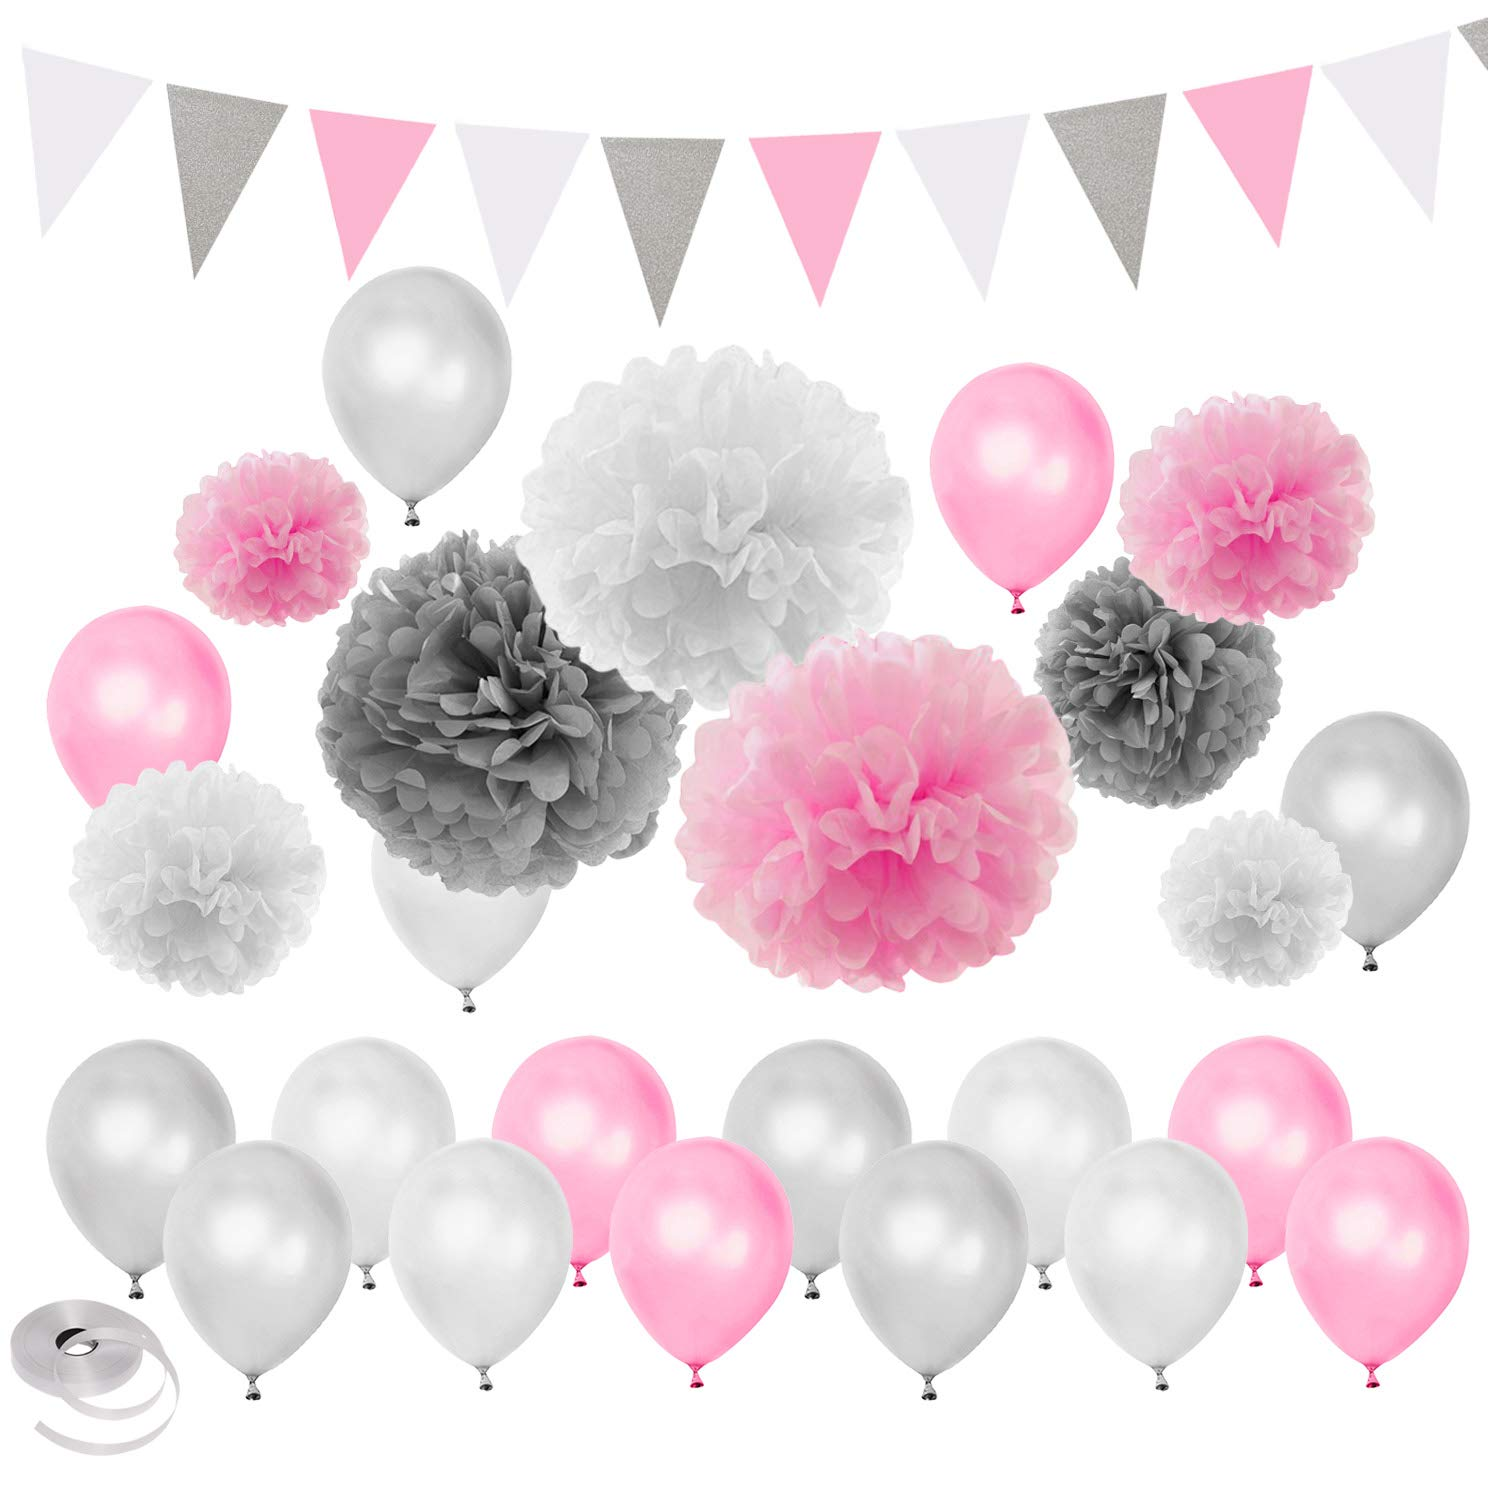 Pink Silver White Tema Baby Shower Party Decorations Matrimonio Compleanno Forniture-Palloncini Paper Pom Pom e Triangle Banners LUCK COLLECTION